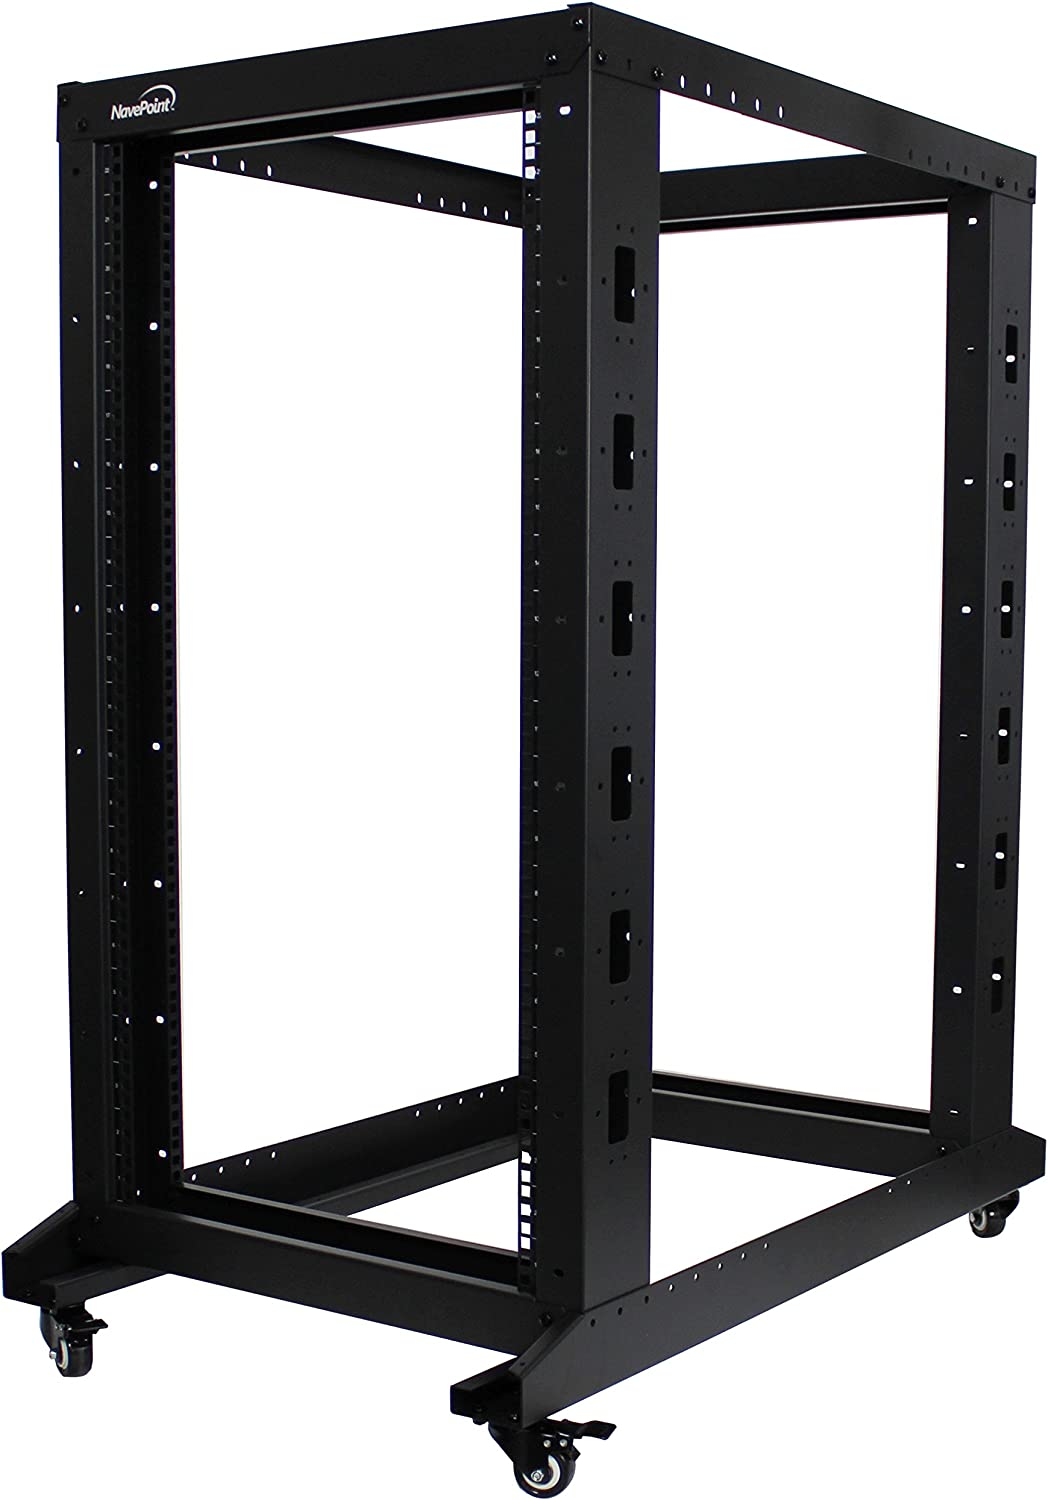 NavePoint 22U Professional 4-Post IT Open Frame Server Network Relay Rack 1000mm Casters Black